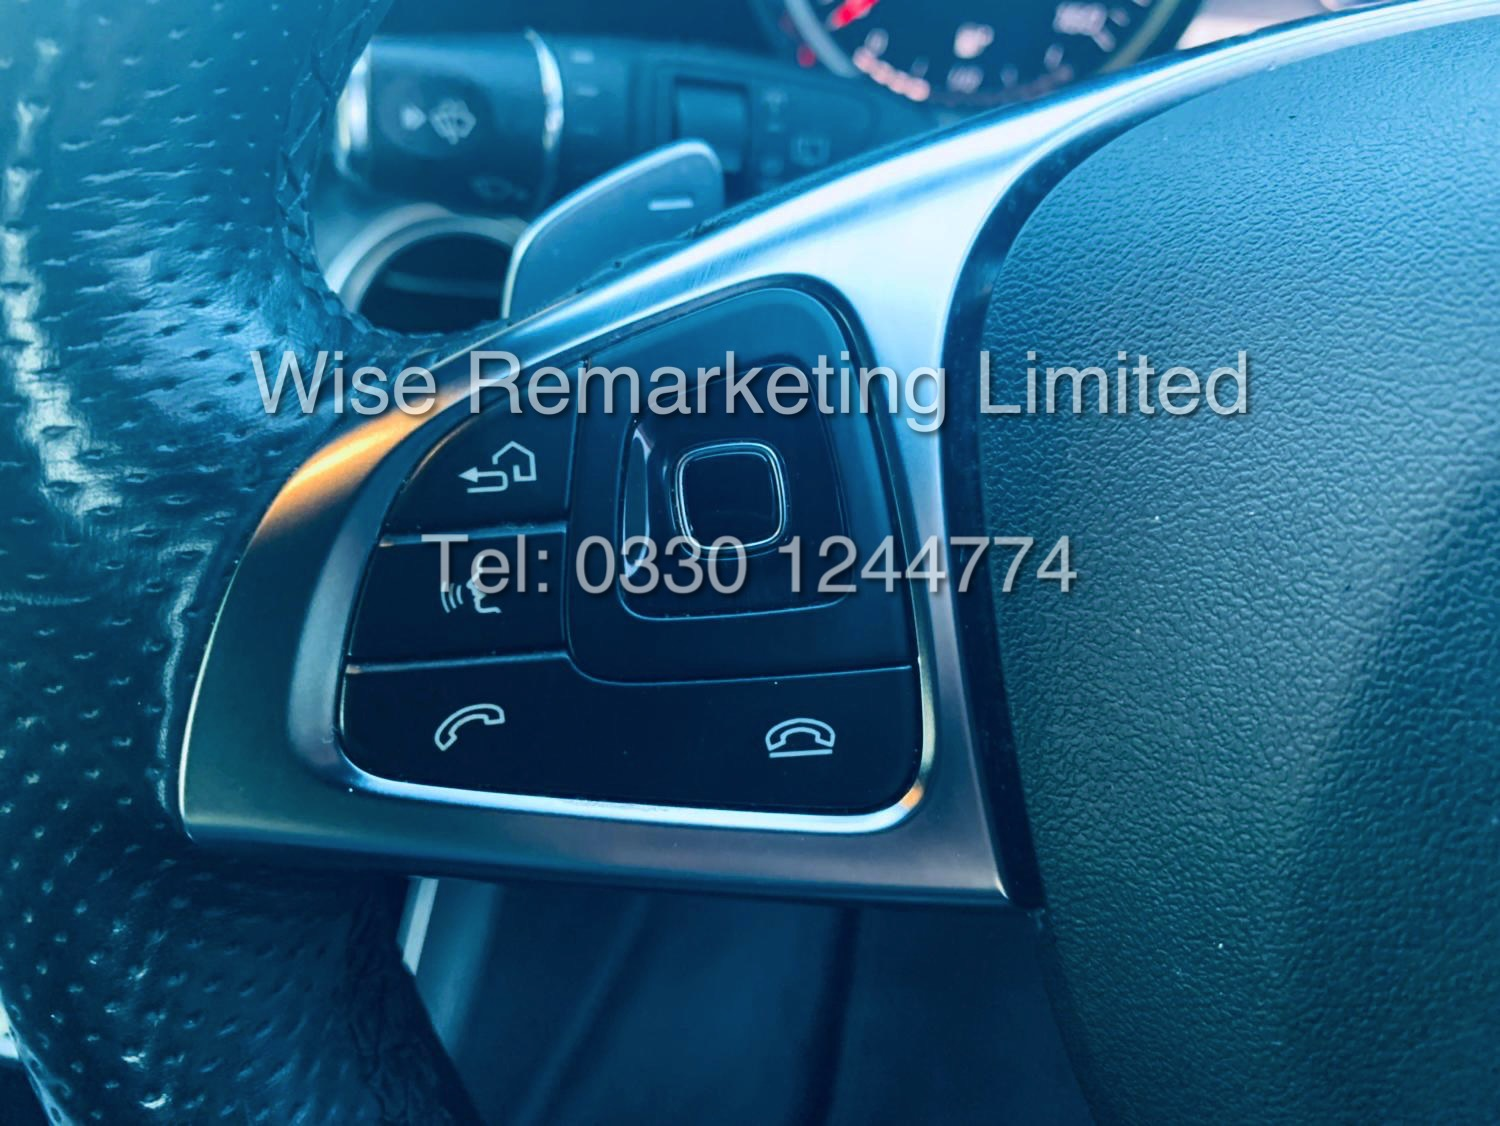 MERCEDES E CLASS ESTATE E220D AMG LINE 2017 / 9G -TRONIC / *LOW MILES* / 1 OWNER - Image 39 of 42